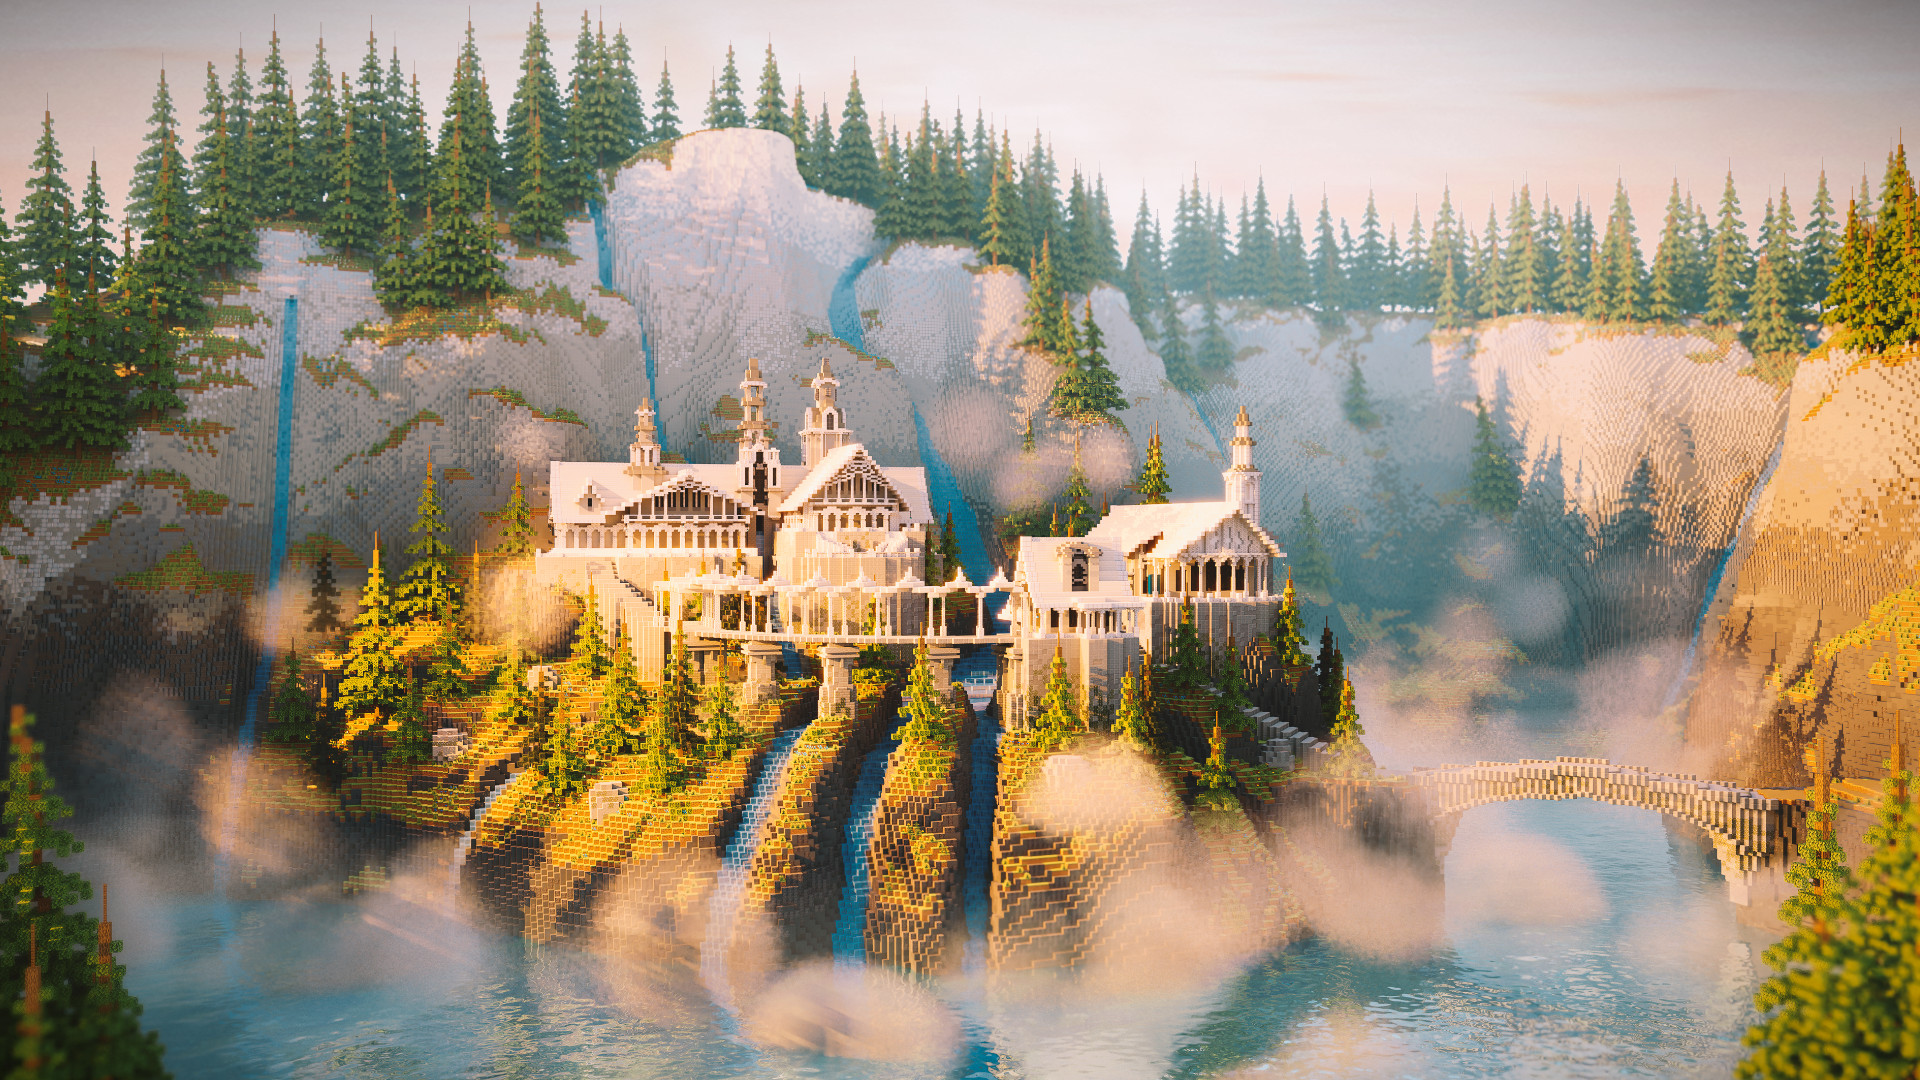 Minecraft player spends weeks recreating Rivendell from Lord of the Rings